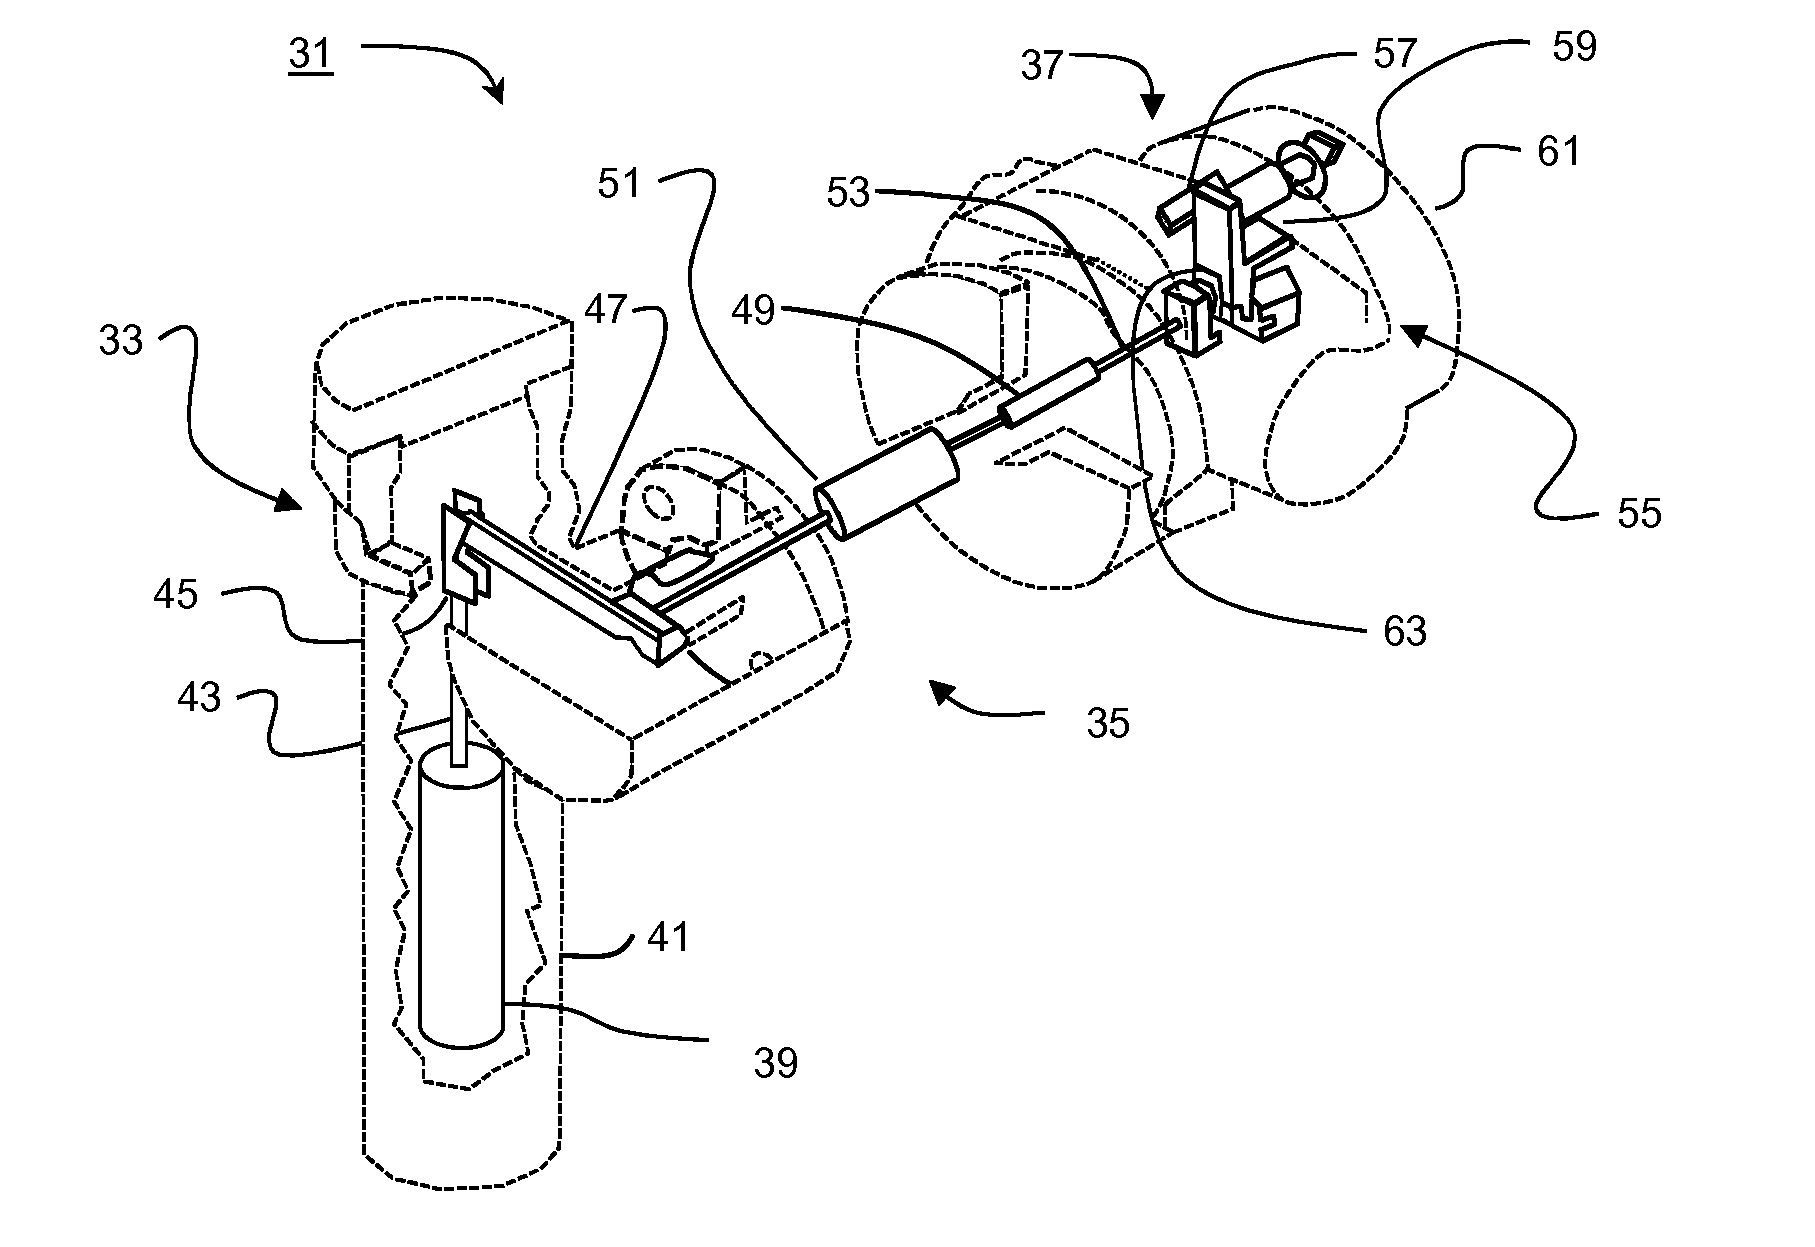 Hook Up Drawing For Level Transmitter